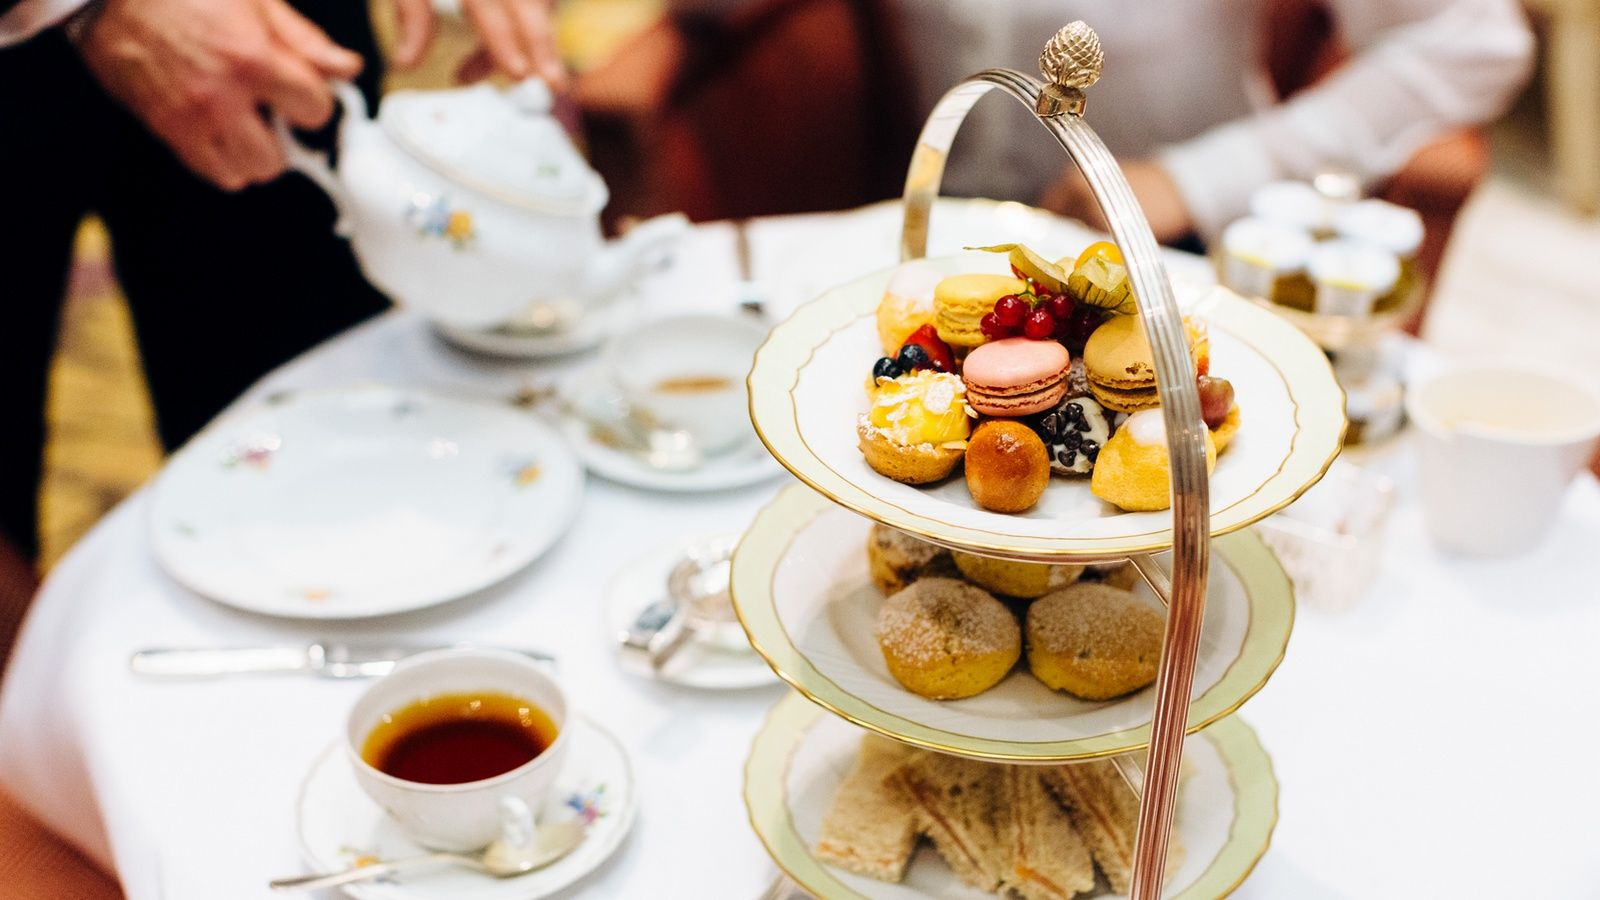 The St. Regis Afternoon Tea Ritual